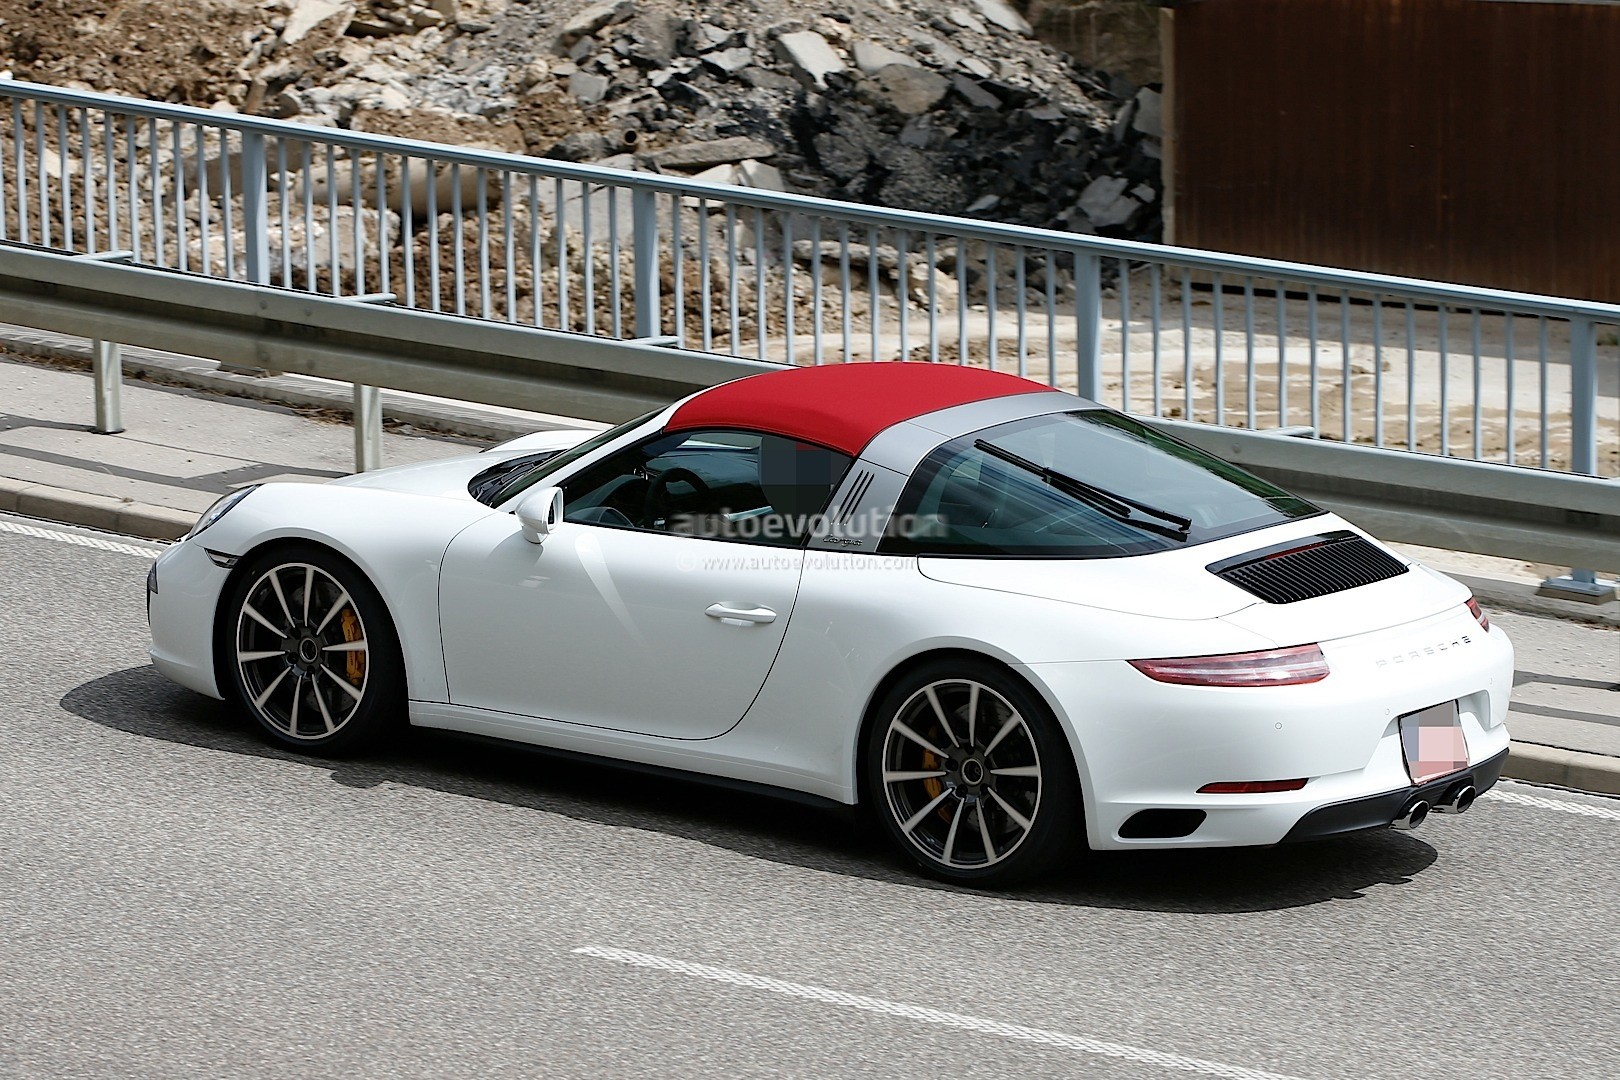 2016 porsche 911 facelift interior revealed in fresh for Porsche 911 interieur